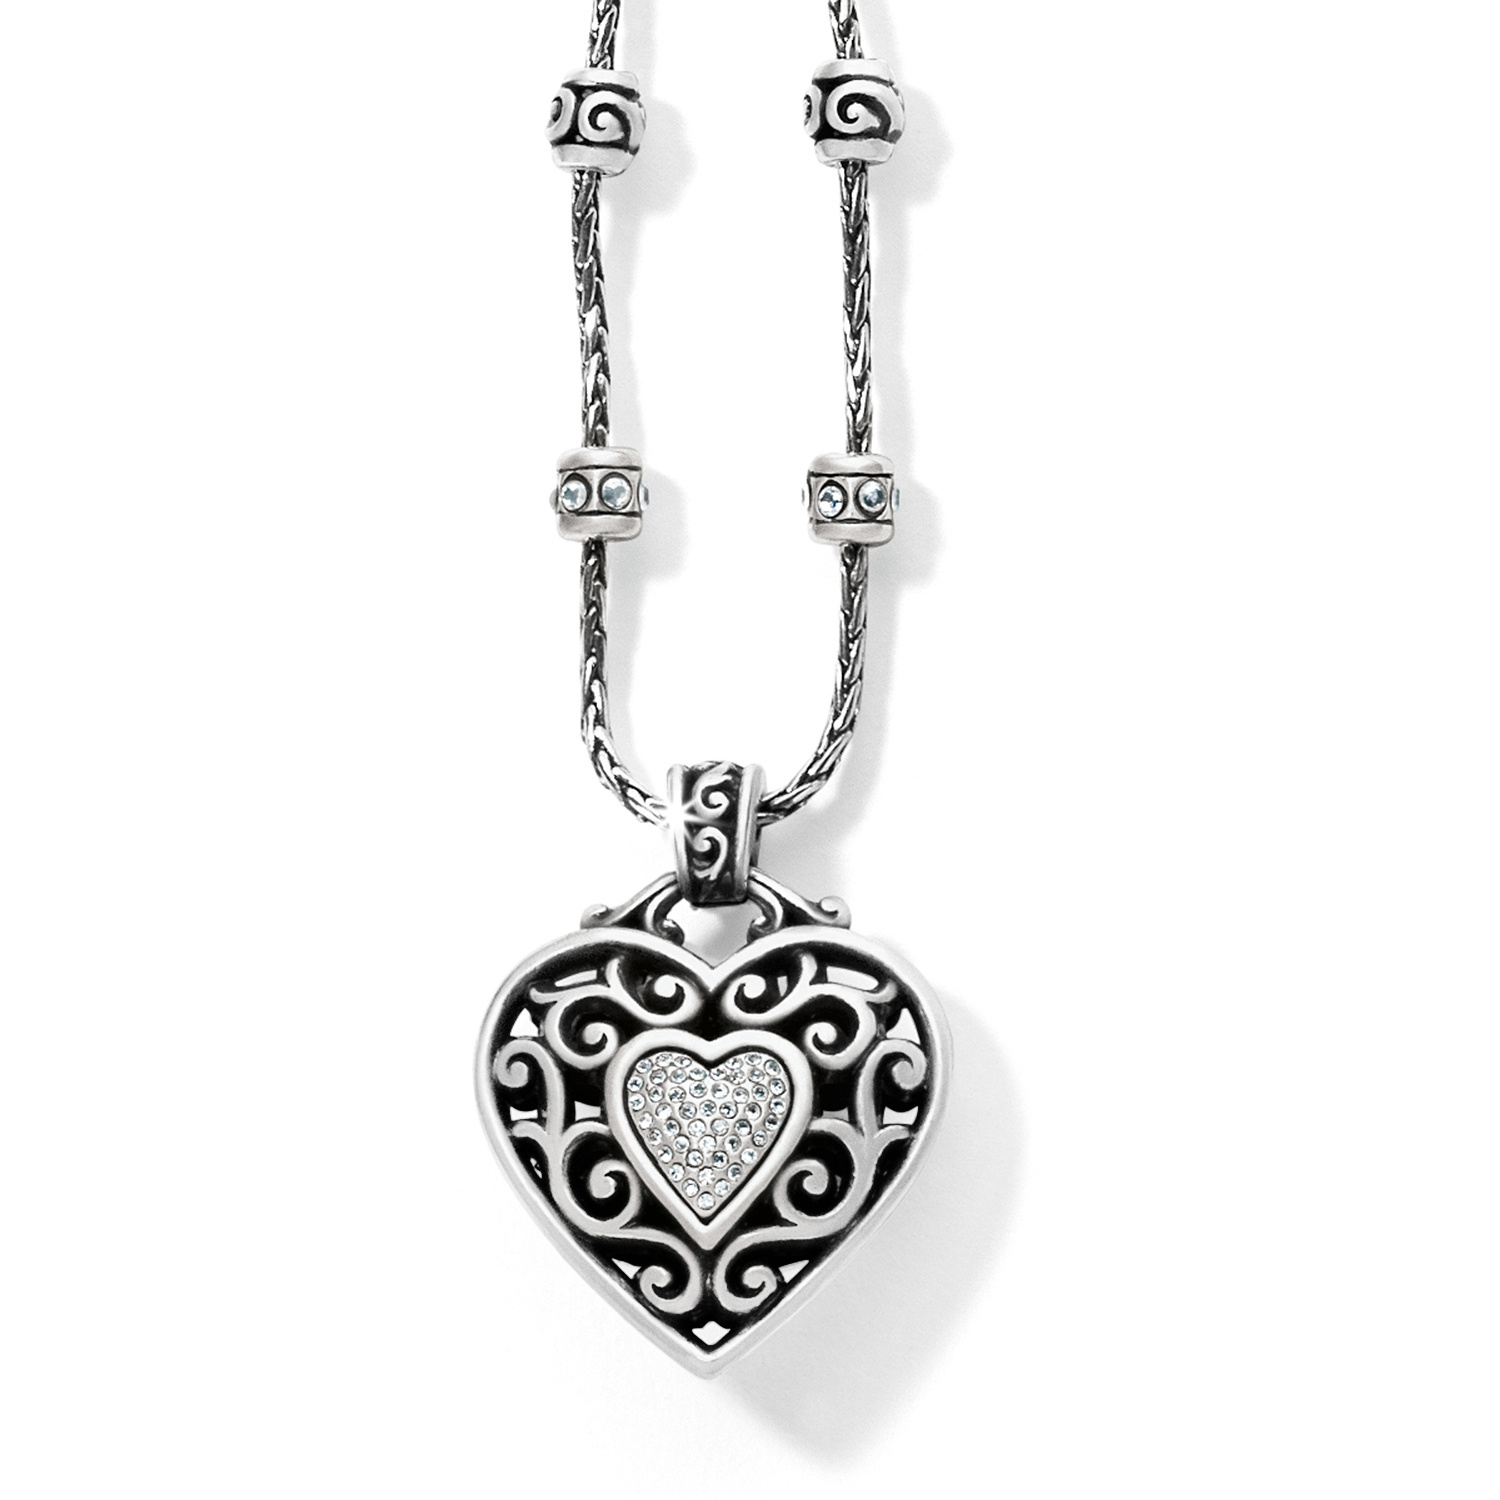 Reno Heart Necklace With Regard To 2020 Heart Fan Pendant Necklaces (Gallery 5 of 25)